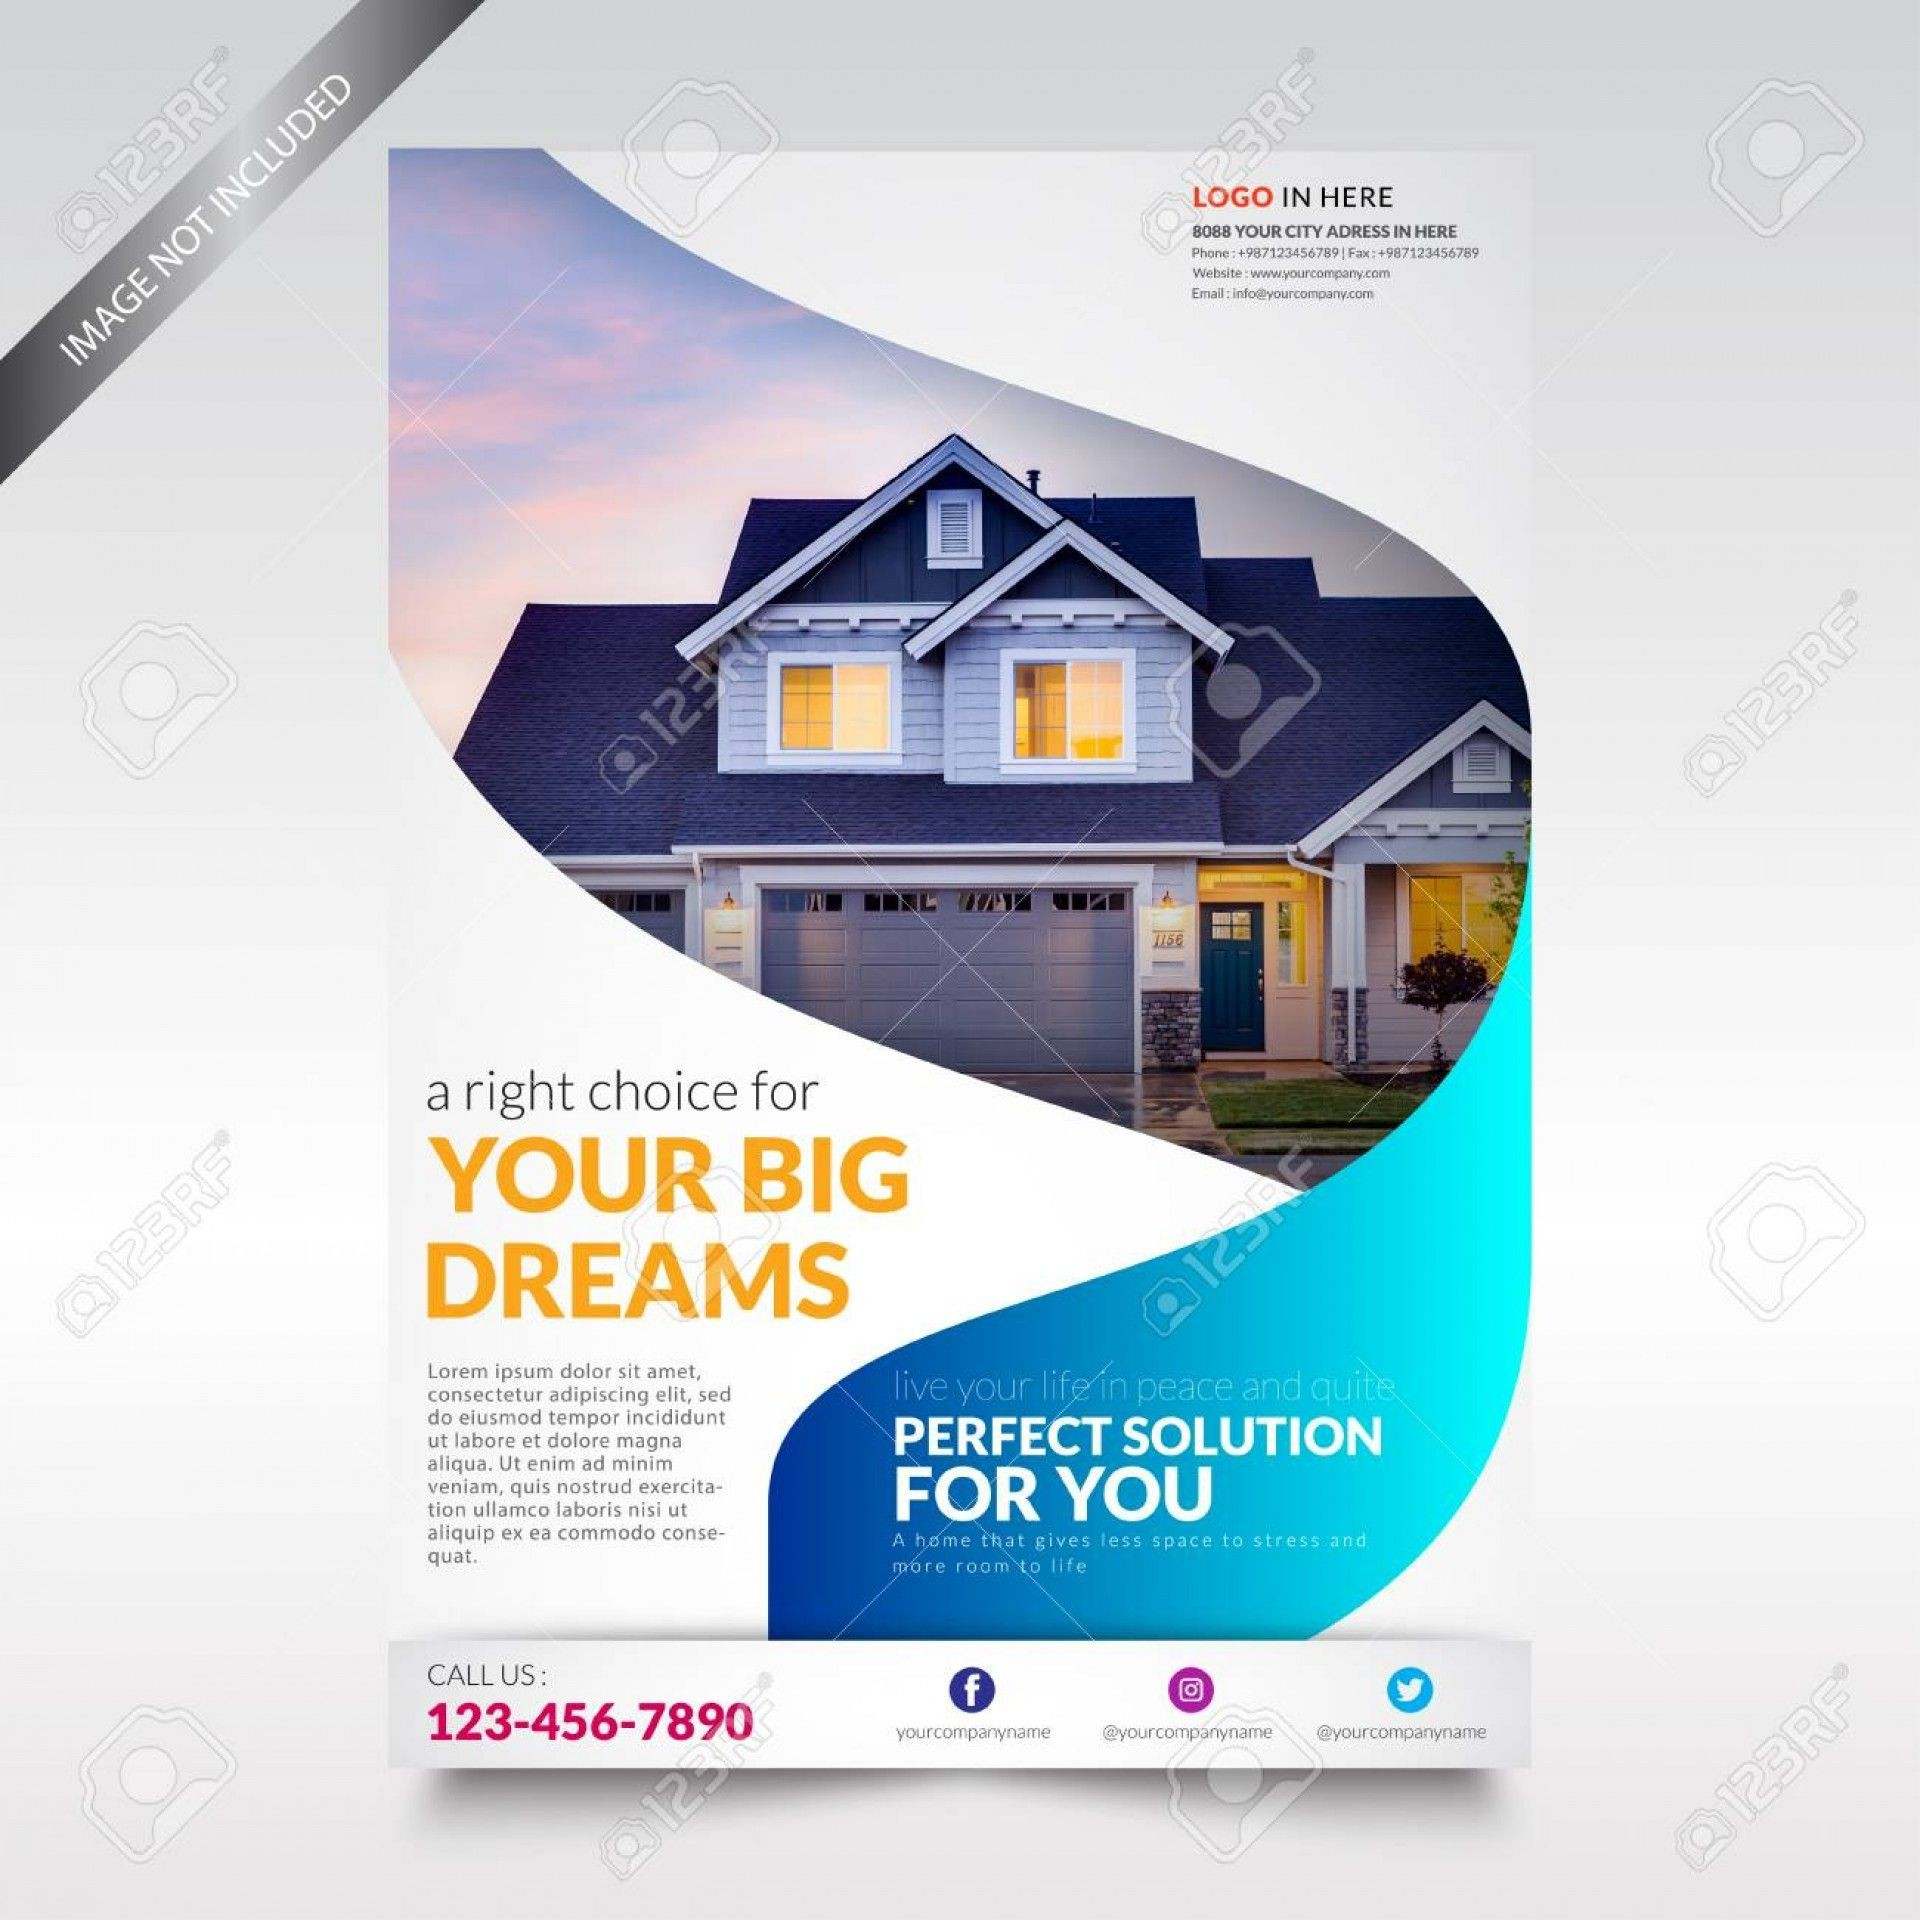 001 Surprising Real Estate Flyer Template Free Picture  Publisher Commercial Pdf Download1920